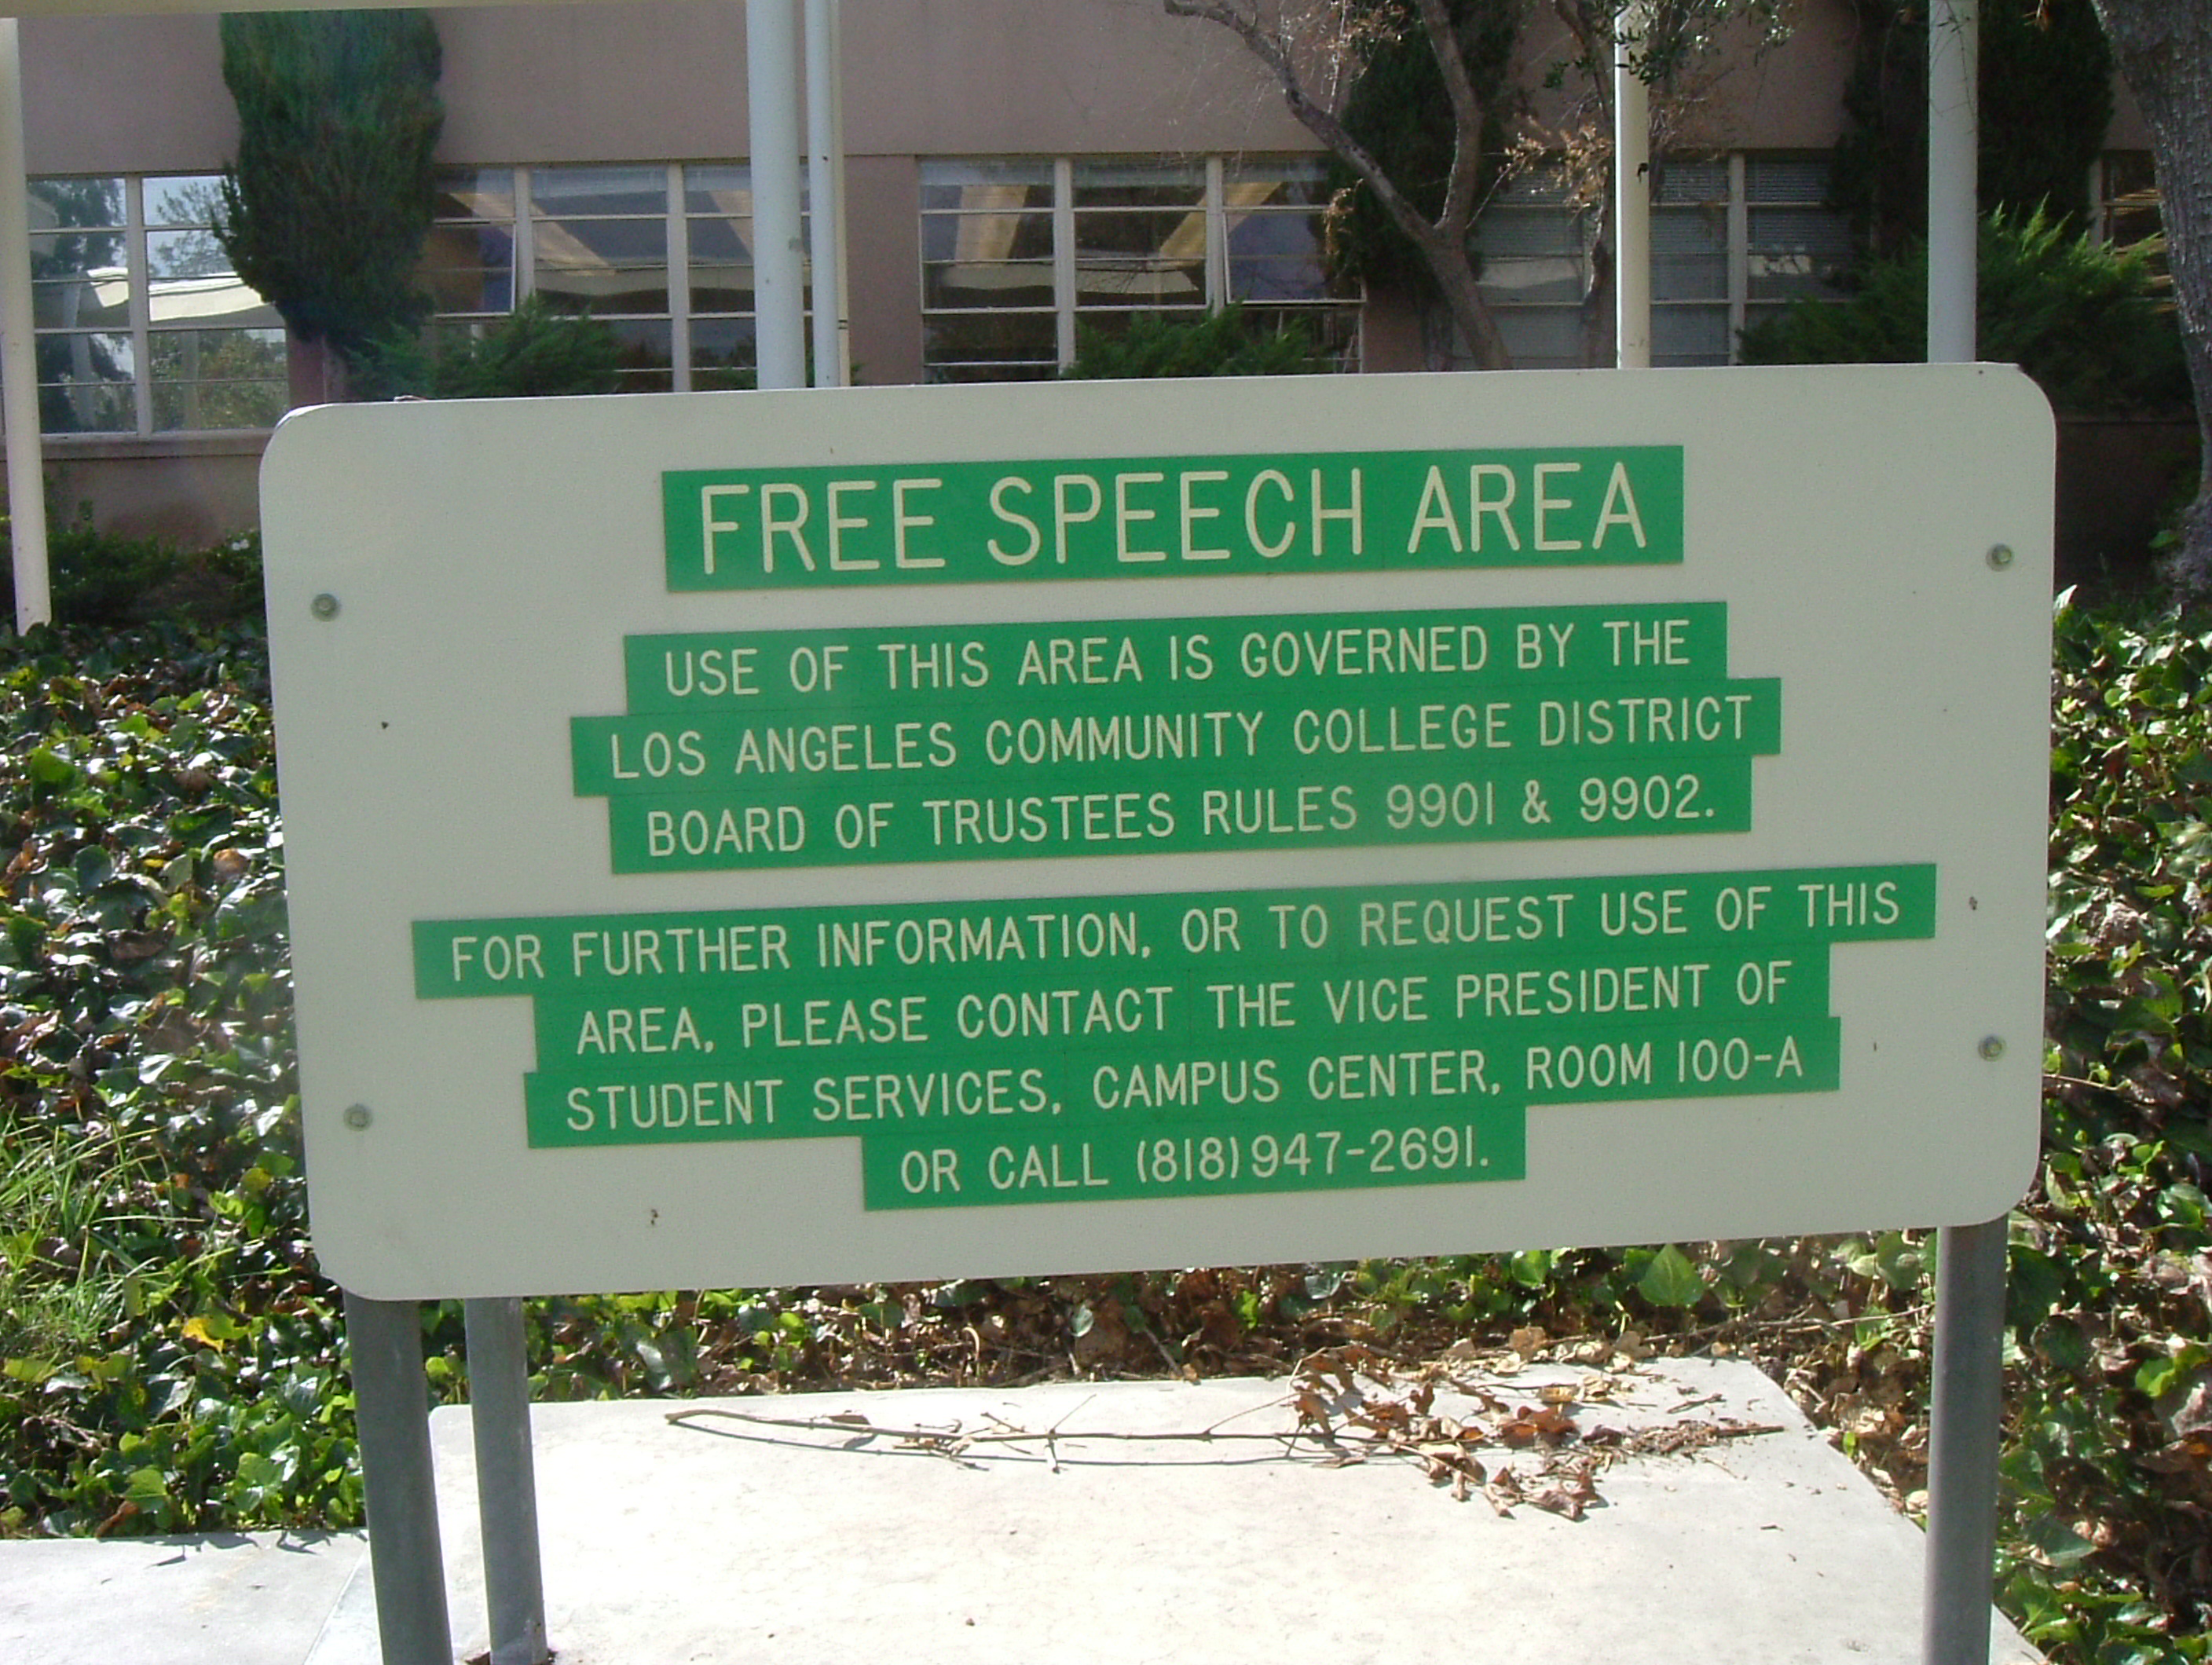 Does the First Amendment Protect Commercial Speech? - The Meiklejohn ...